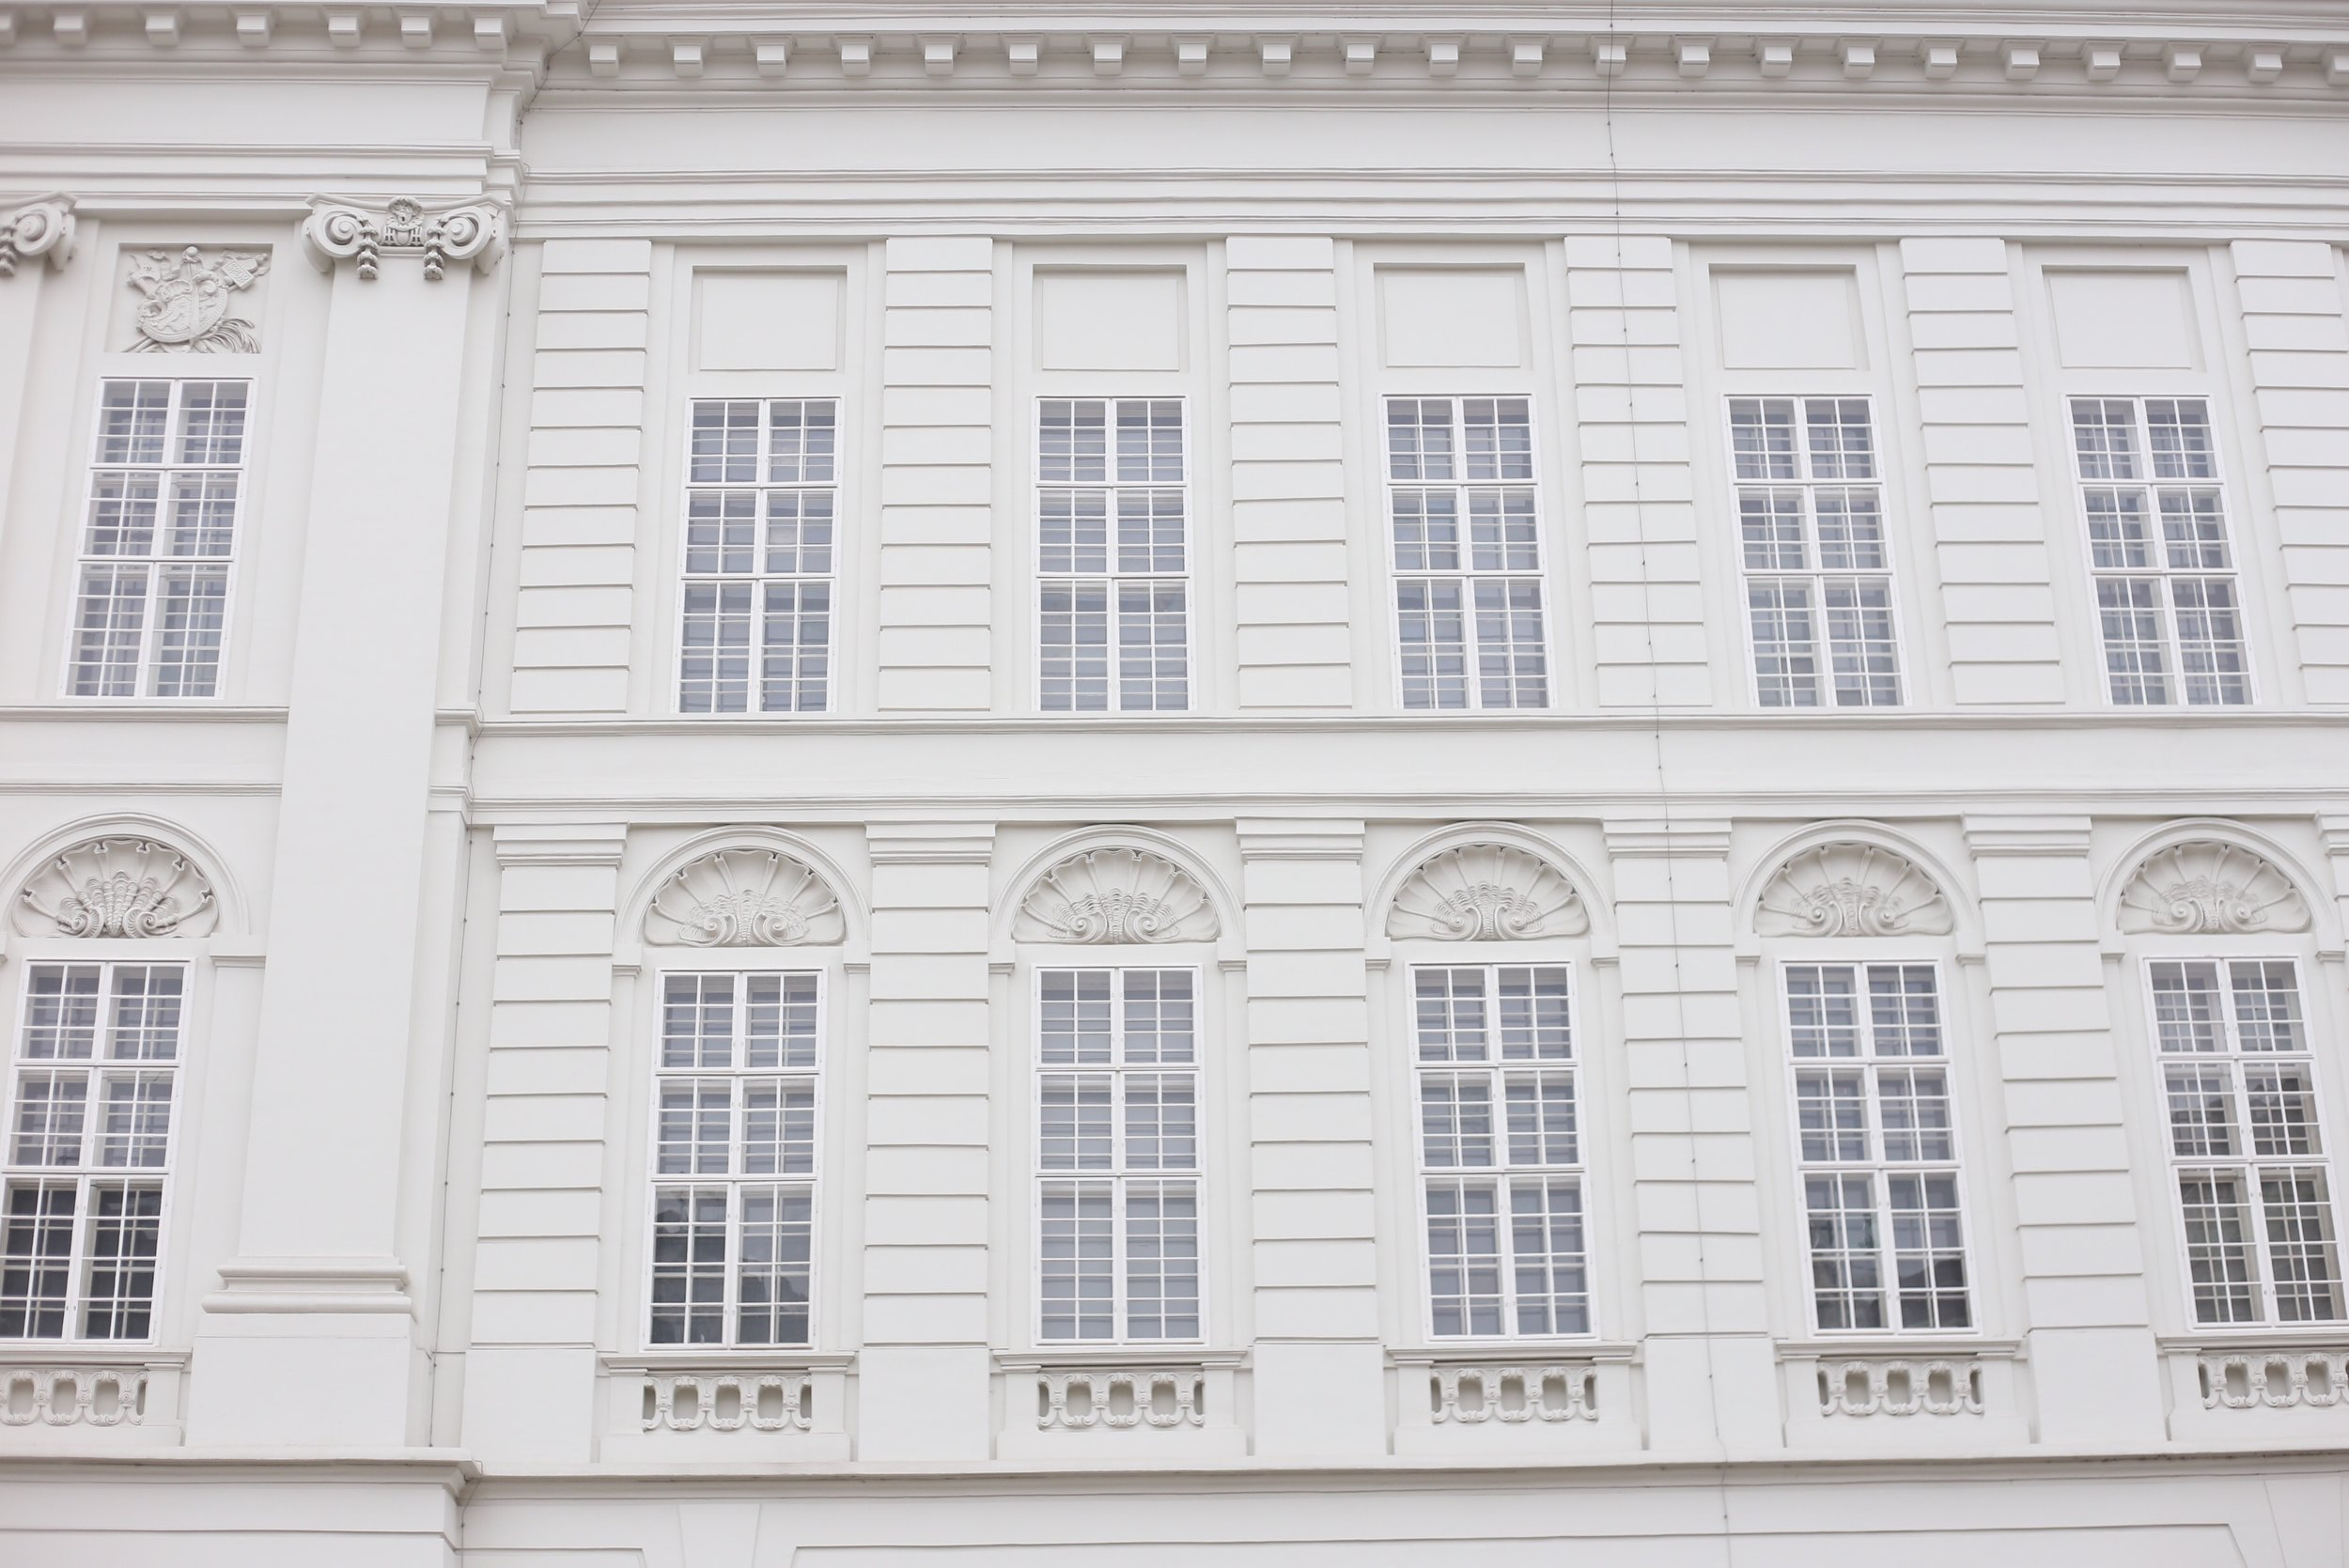 Grand apartments with delicate window decoration all in white.